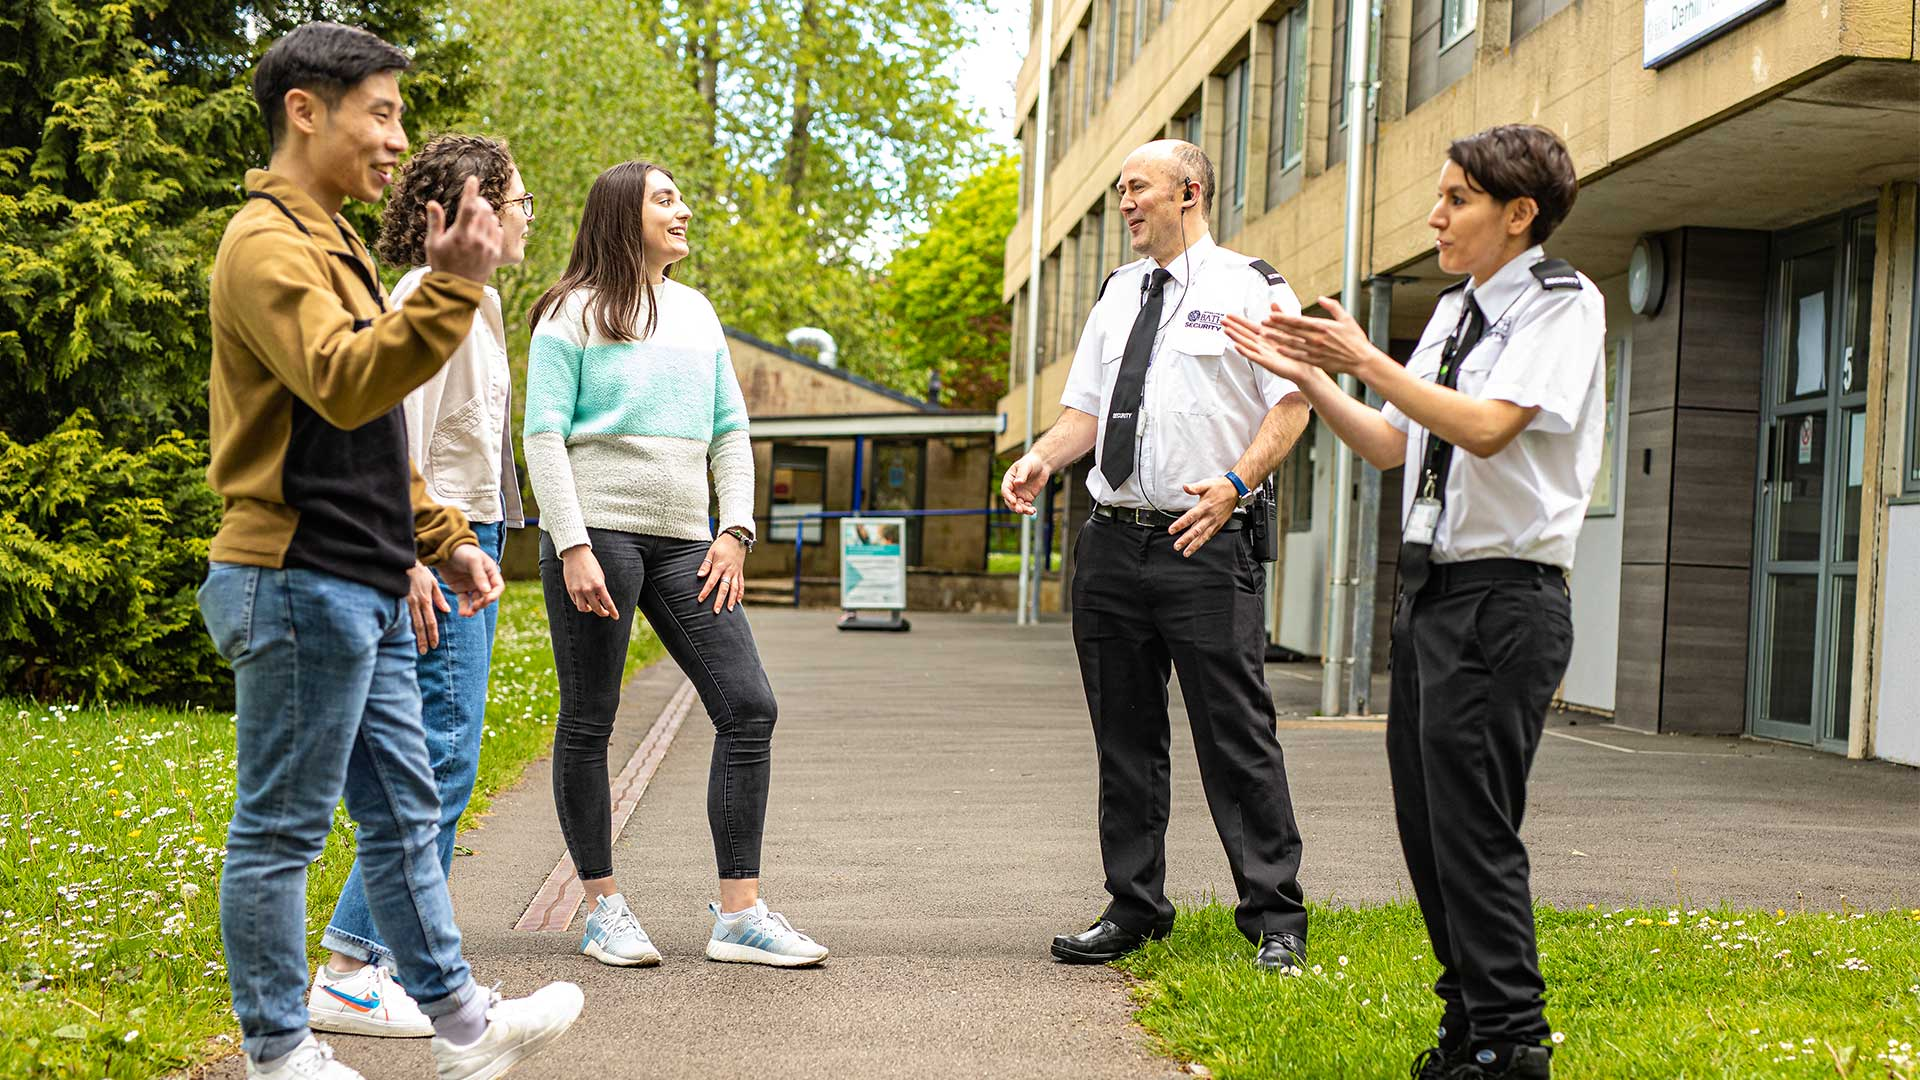 Security offers chatting to students outside accommodation.